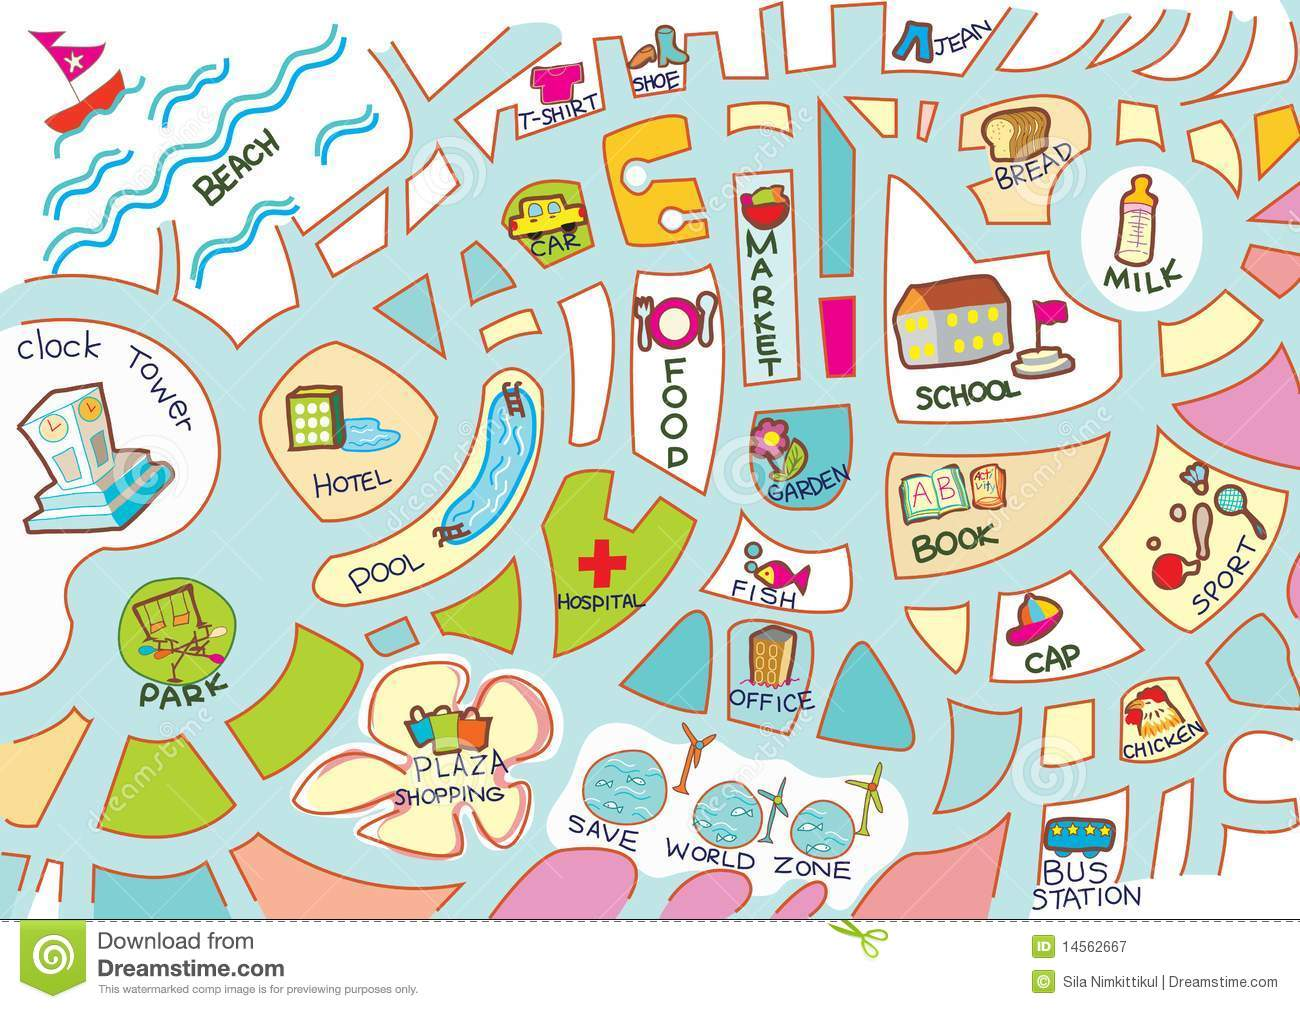 singapore direction map with Royalty Free Stock Photography Activities Map Kids Image14562667 on Langkawi 000003 also Singapores Lta And Itss Launch Smart Mobility 2030 besides Women Only Bathrooms In The Sky further Legoland Malaysia Location And Map furthermore Hiccup.